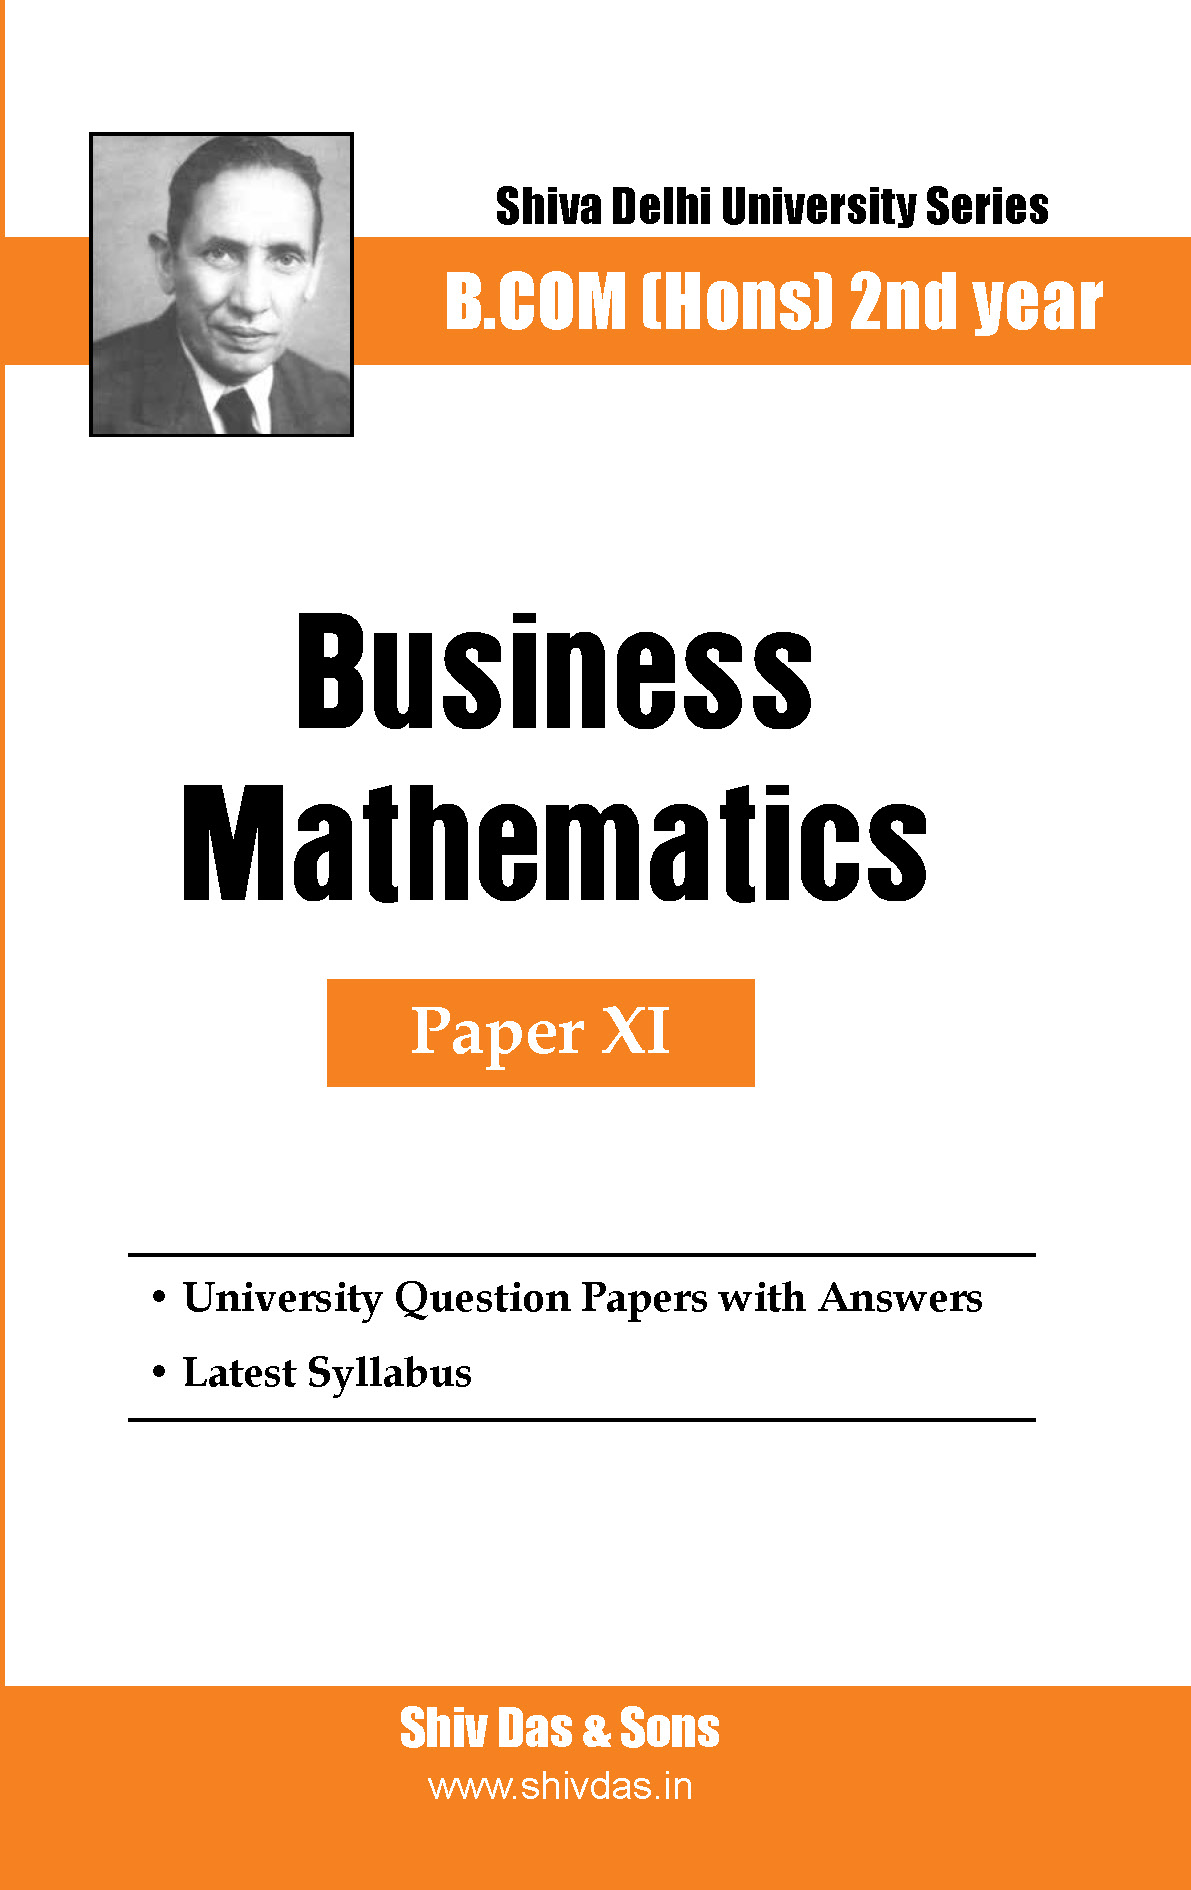 Business Mathematics B.Com Hons 2nd Year SOL/External